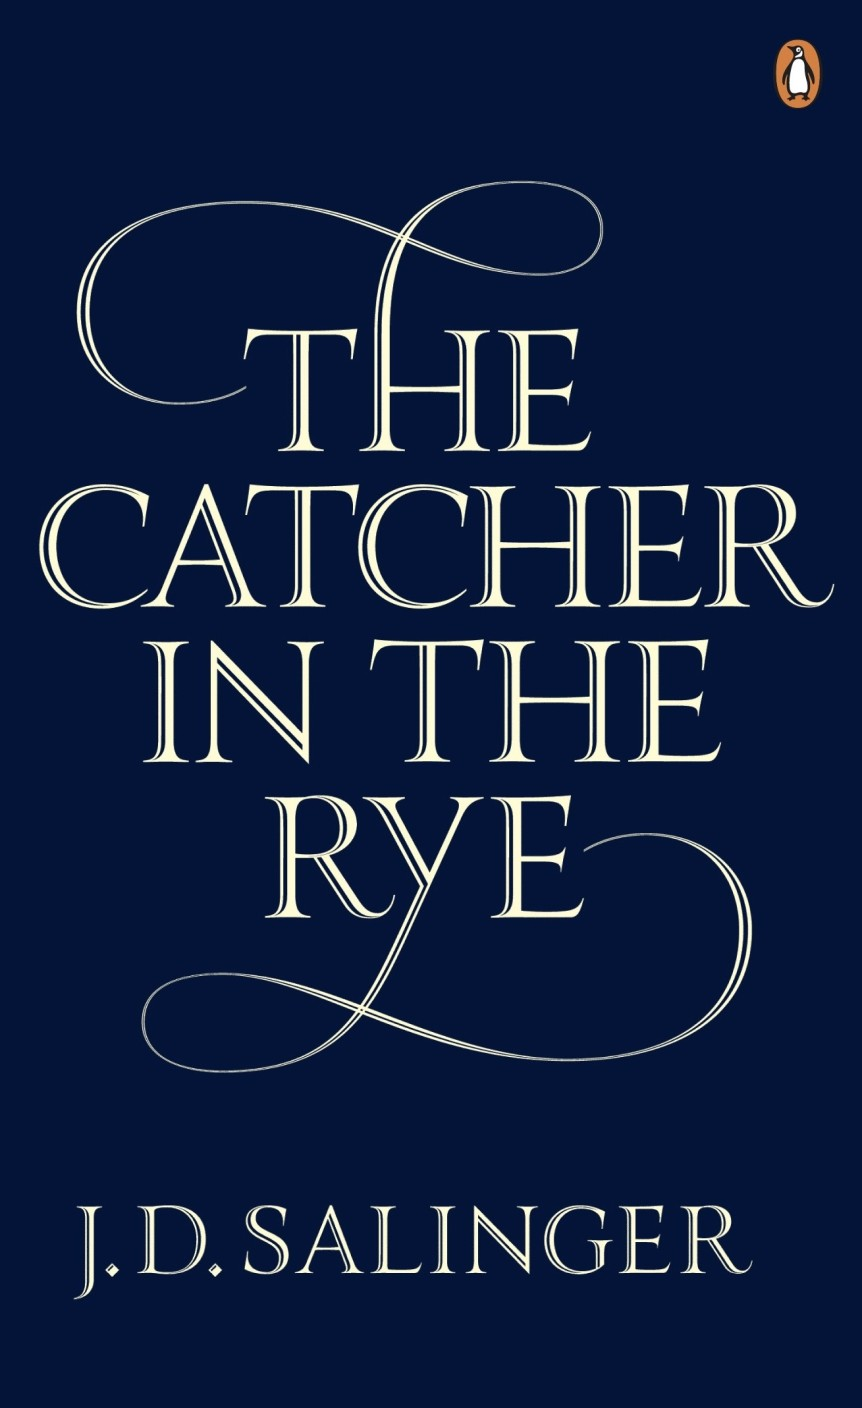 "the replacement of the real values in the catcher in the rye a novel by j d salinger Still, it's likely you've wanted to read a classic novel at least at some point in your  life  again: jd salinger's angsty faux-memoir the catcher in the rye,   gocker says good classics of literature tend to have ""a real obdurate heart   book for you, because there shouldn't be value judgment in reading."